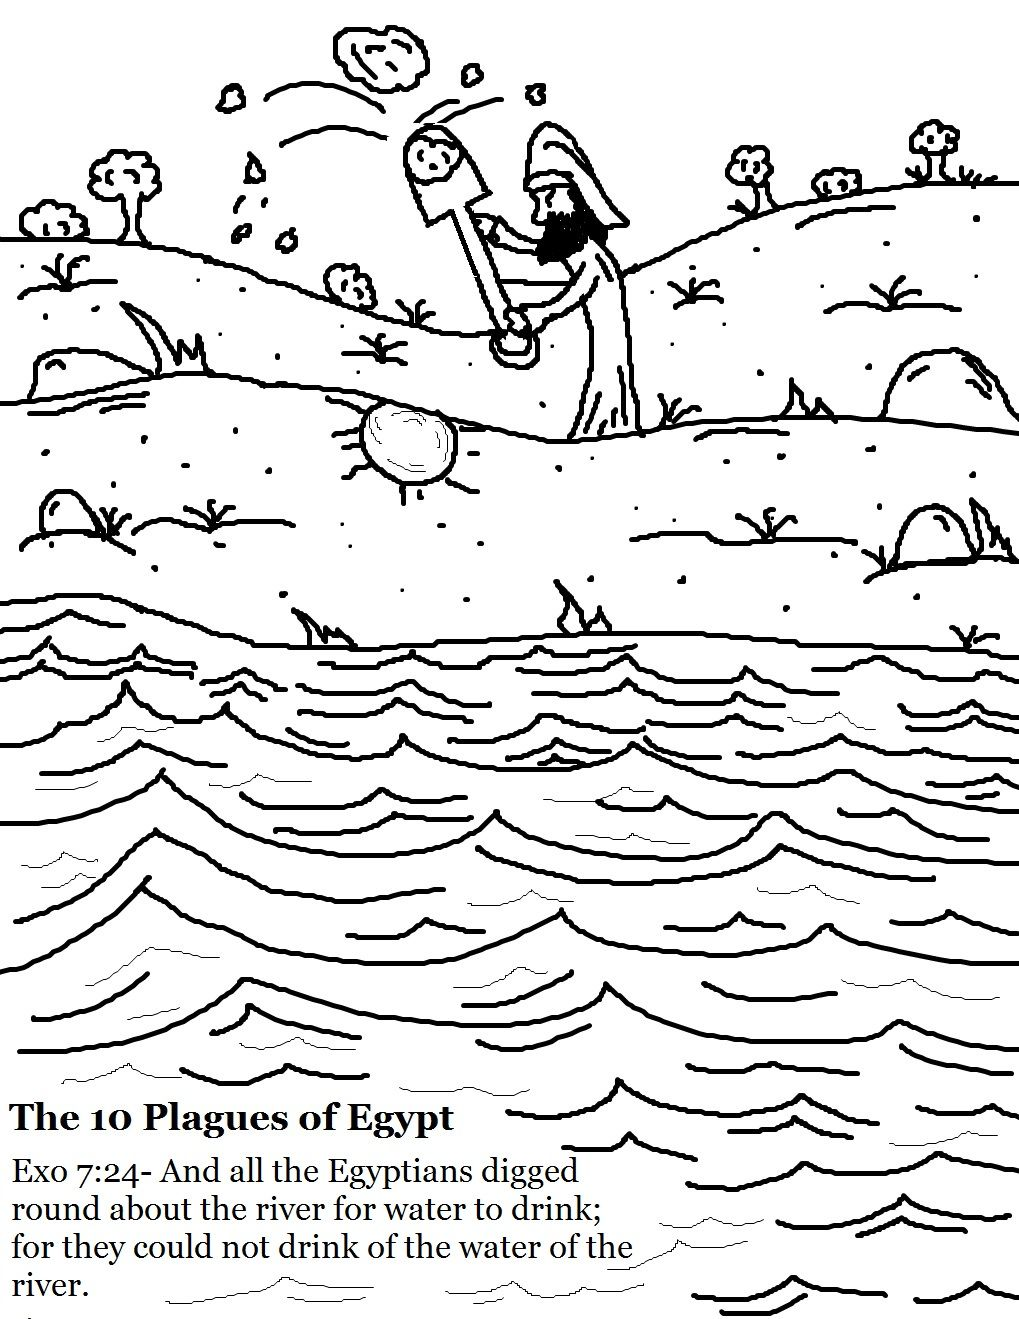 Coloring pages with images coloring pages 10 plagues